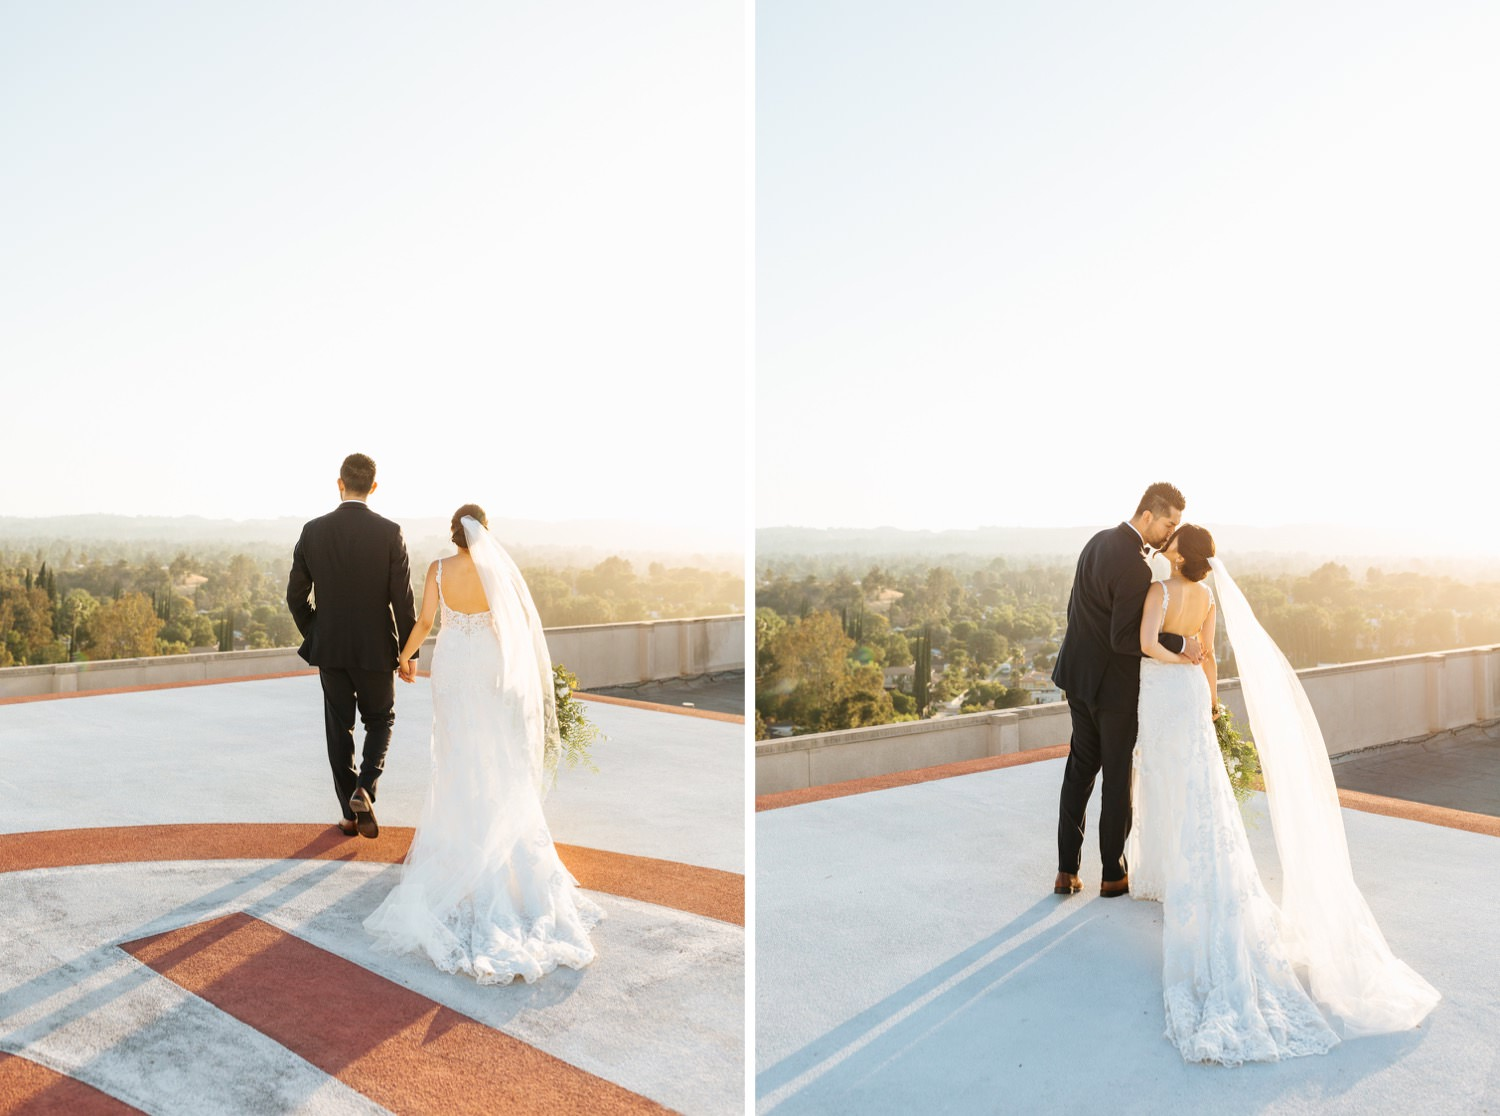 Bride and Groom rooftop wedding photos - Woodland Hills Wedding - https://brittneyhannonphotography.com